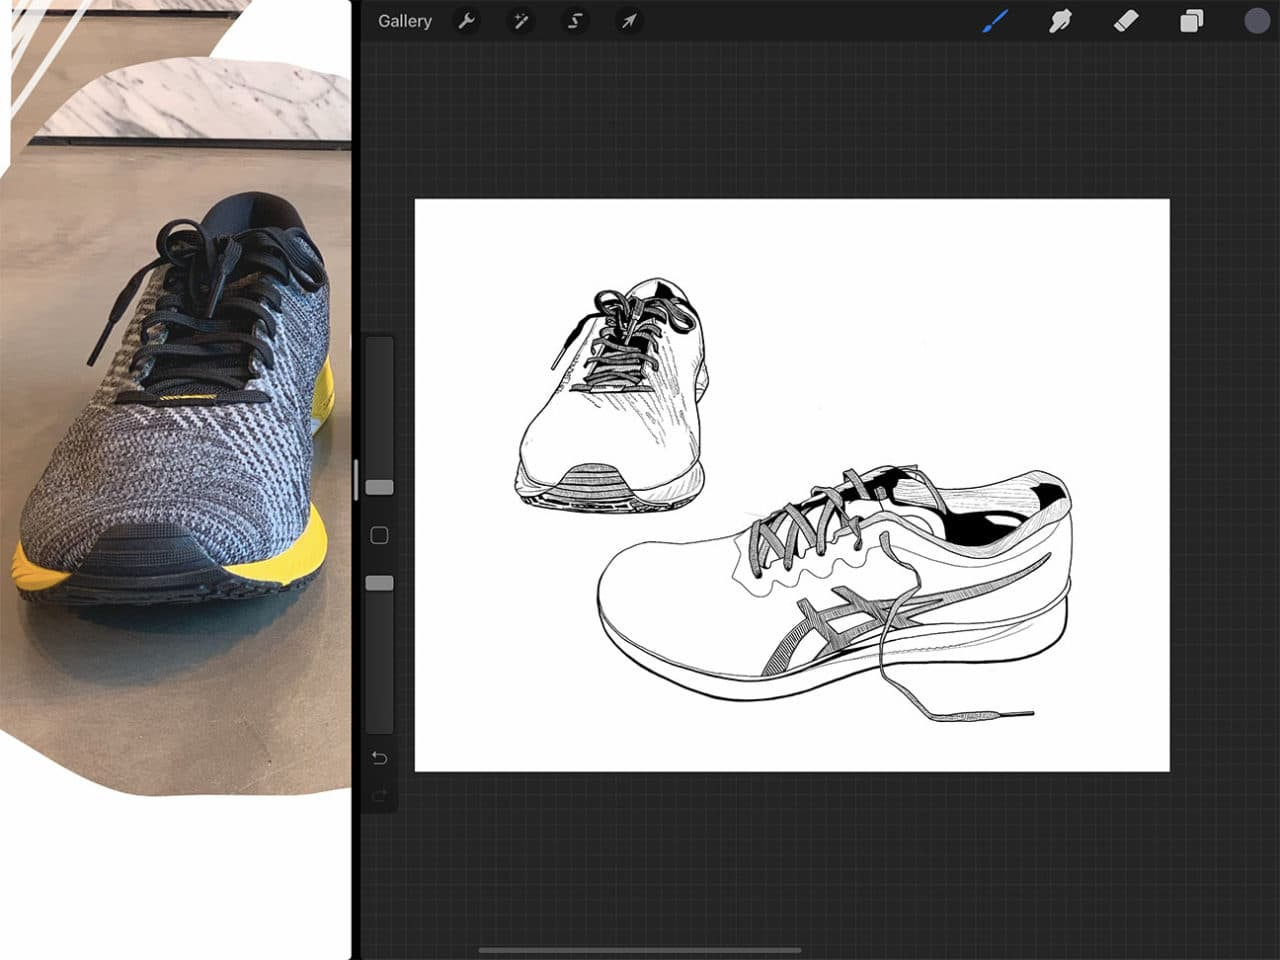 Procreate tutorial: capturing different textures is made easy with the Apple Pencil.